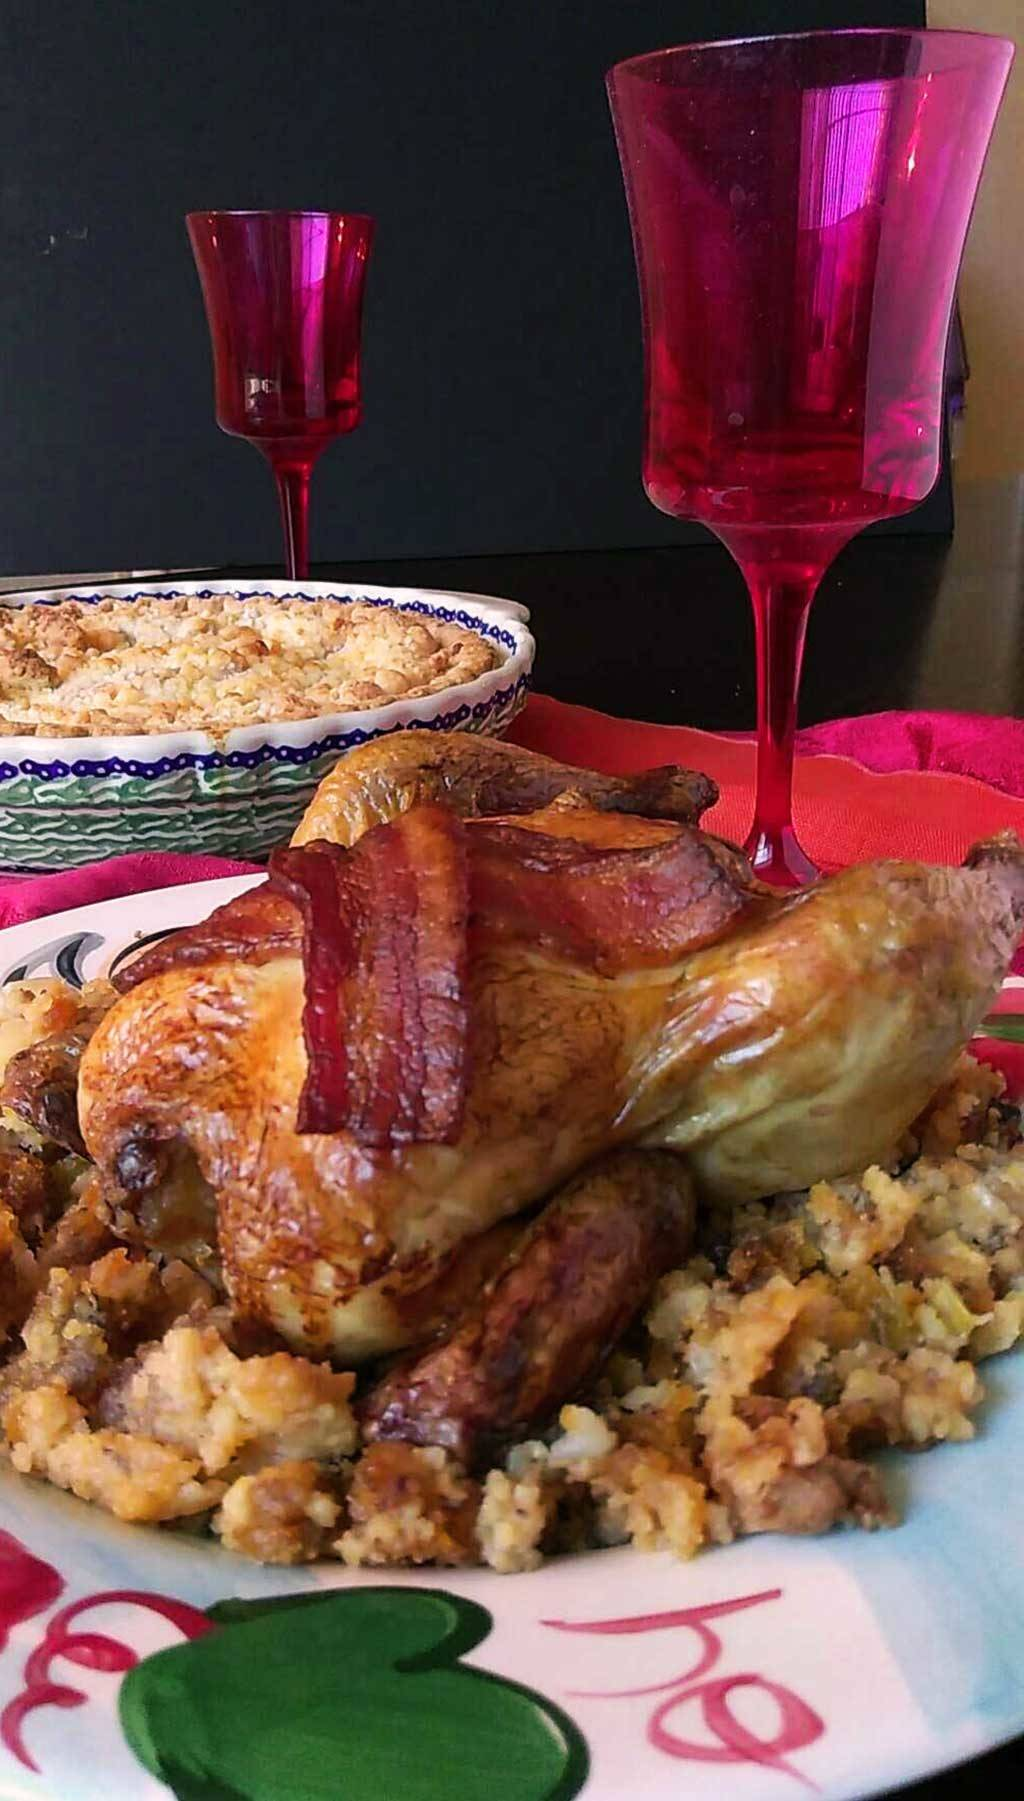 [ad] Cornish Hens with Sausage Stuffing – A Holiday dinner meal plan #LoveThisHolidayTwist